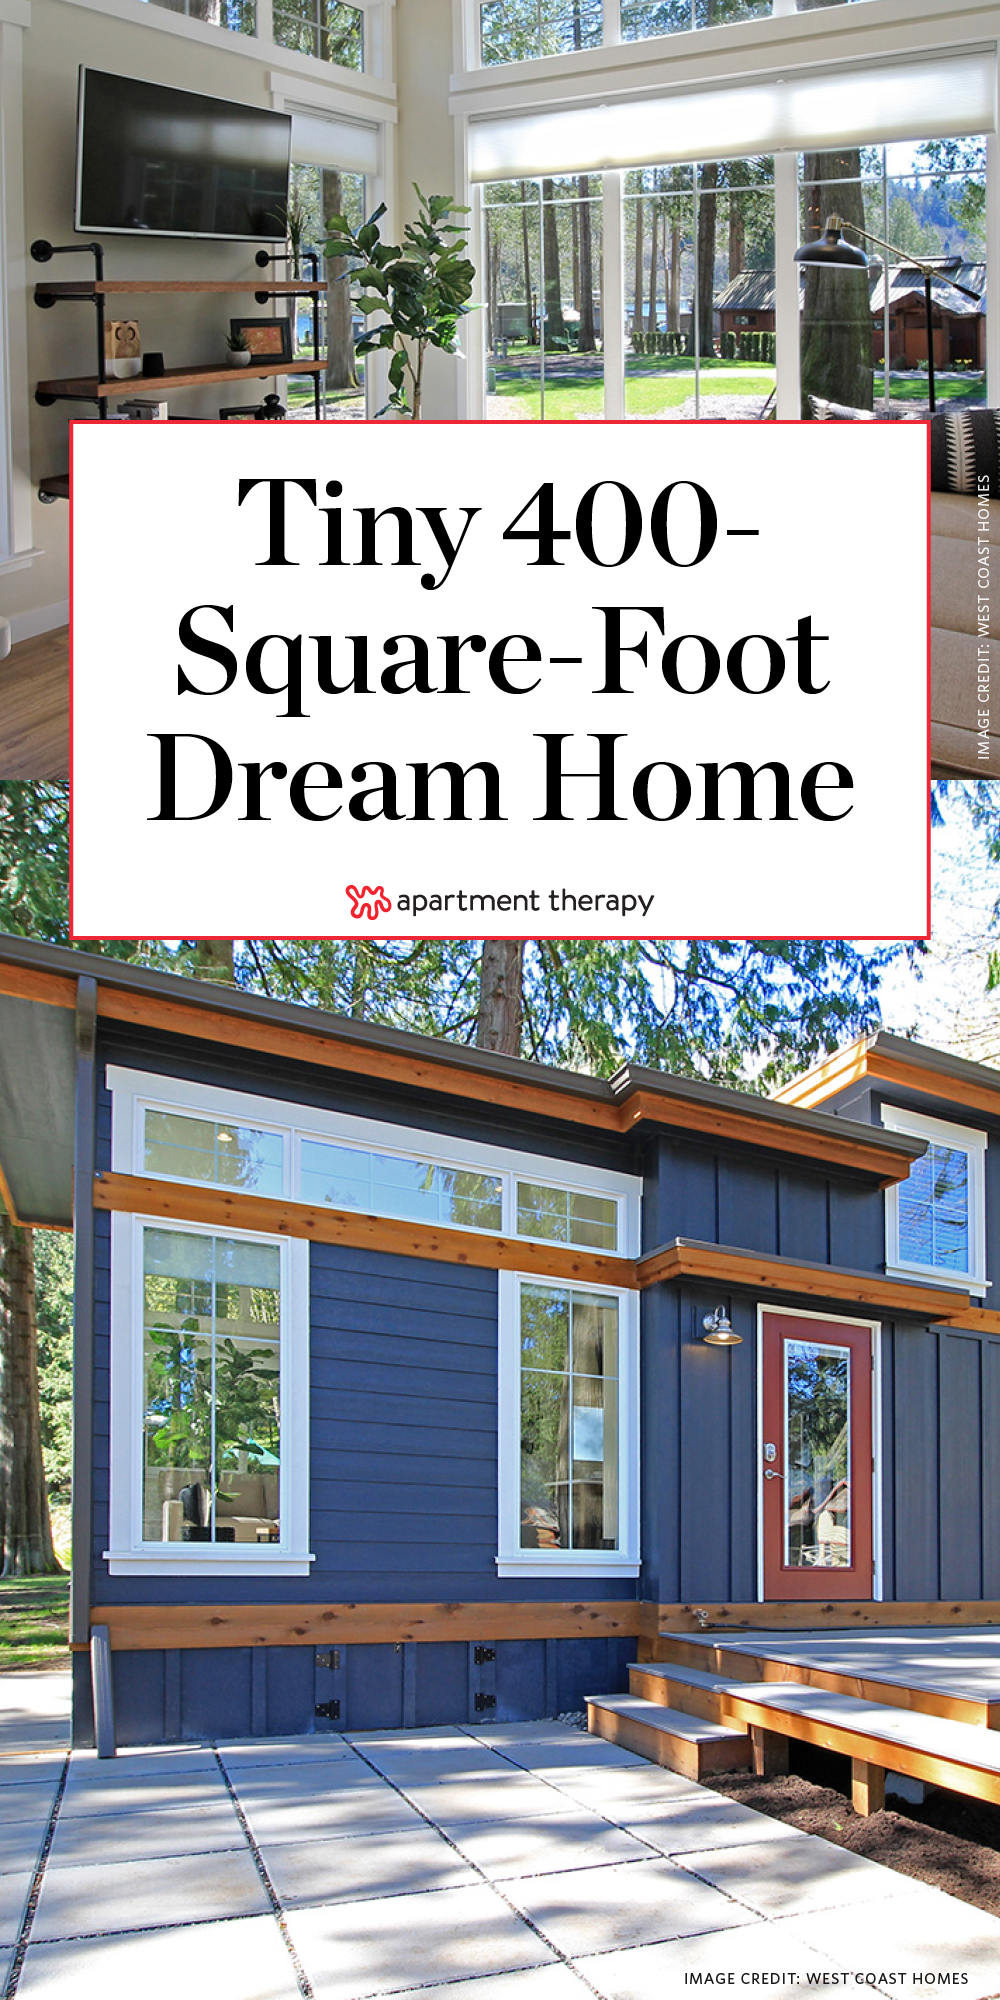 Full One Bedroom Tiny House Layout 400 Square Feet ... Ideal Square Foot House Plans on small square house plans, small cape cod house plans, 700 square ft cabin plans, tiny house plans, 600 sq ft cabin plans, 20 by 40 house plans, 600 sq.feet floor plans, 850 sq ft cabin plans, 600 sq ft apartment plans, 400 ft studio plans, barn garage with roof plans, 400 sf house plans, new orleans shotgun style house plans, non split bedroom house plans, 20 by 30 house plans, 300 sq ft studio plans, 20000 house plans, 200 sq ft cabin plans, 600 s.f. house plans, 600 sf home floor plans,